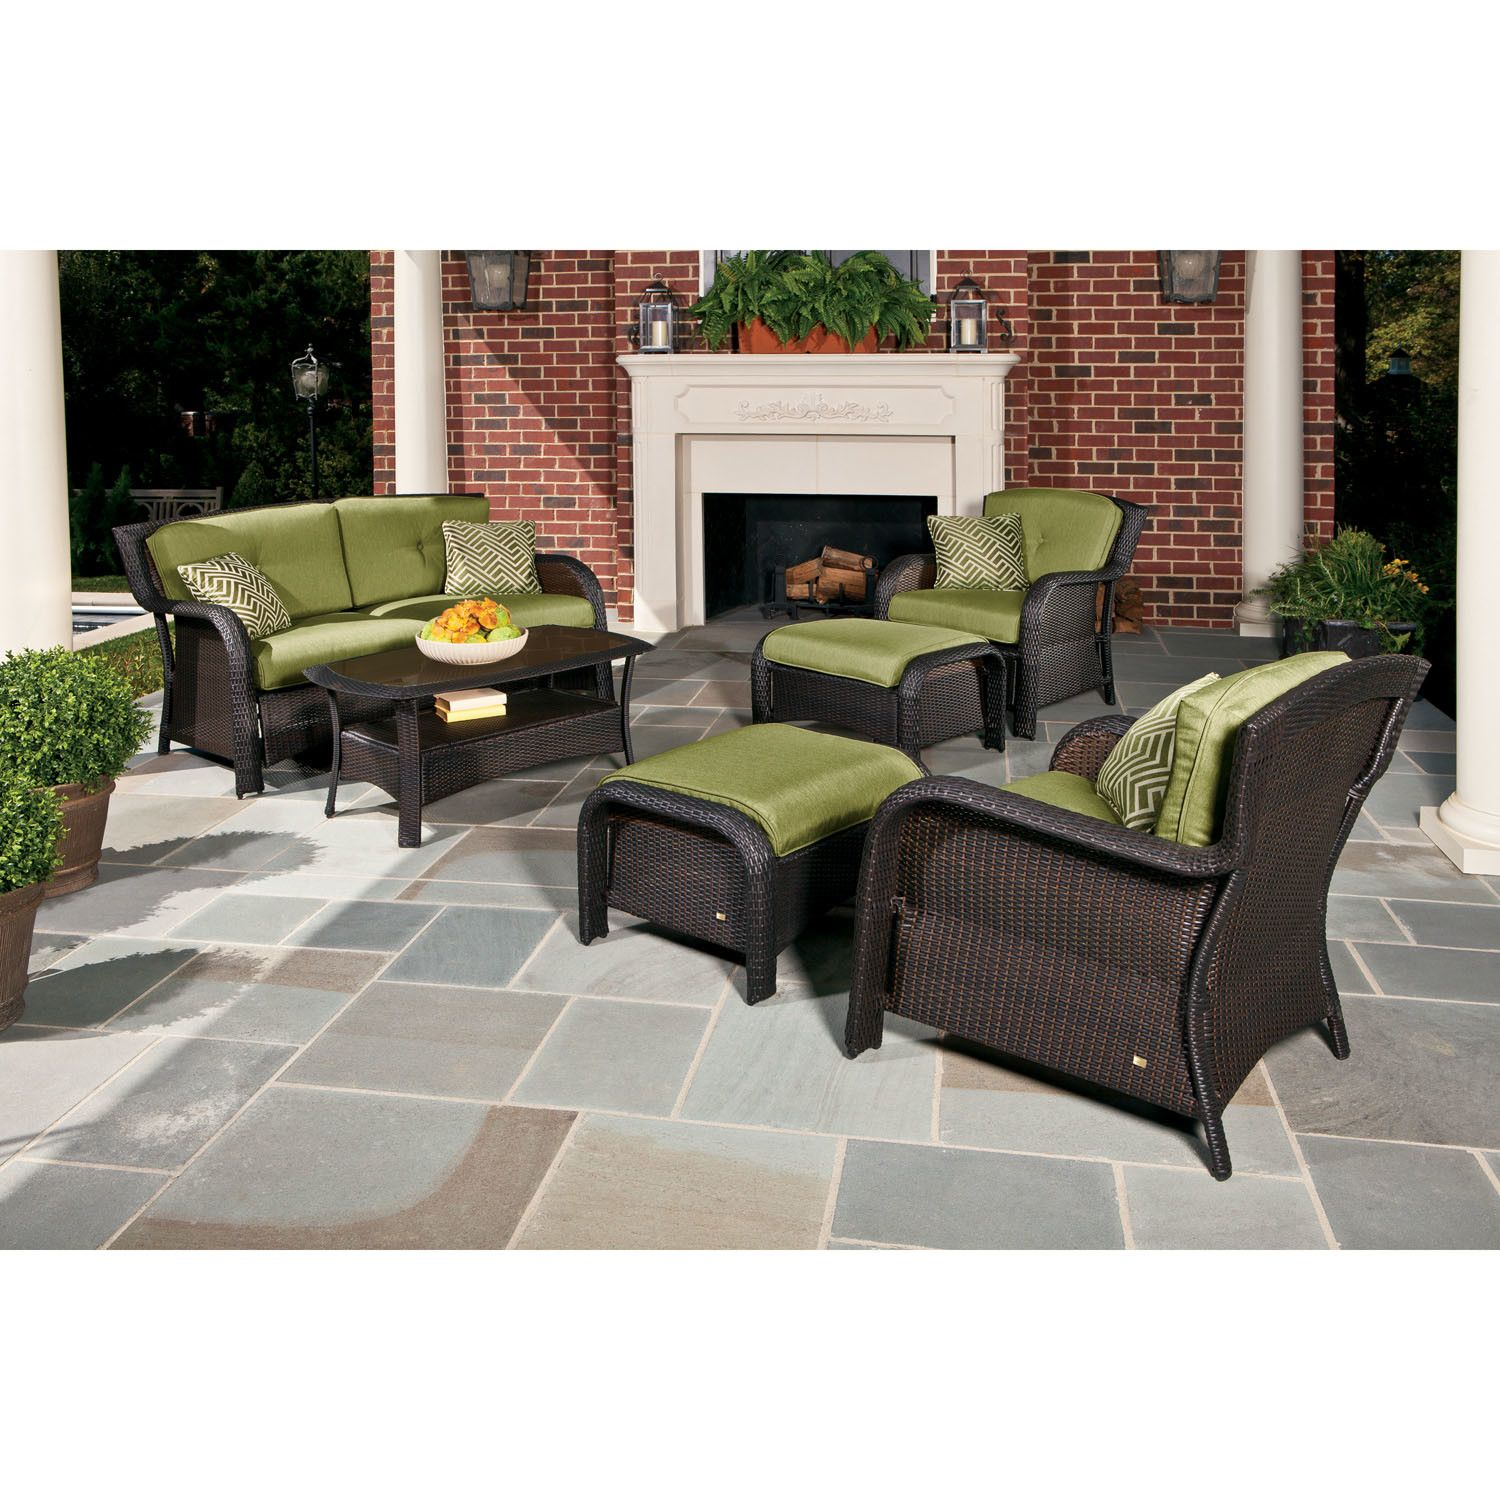 Hanover Outdoor Strathmere 6 Piece Seating Group with Cushions